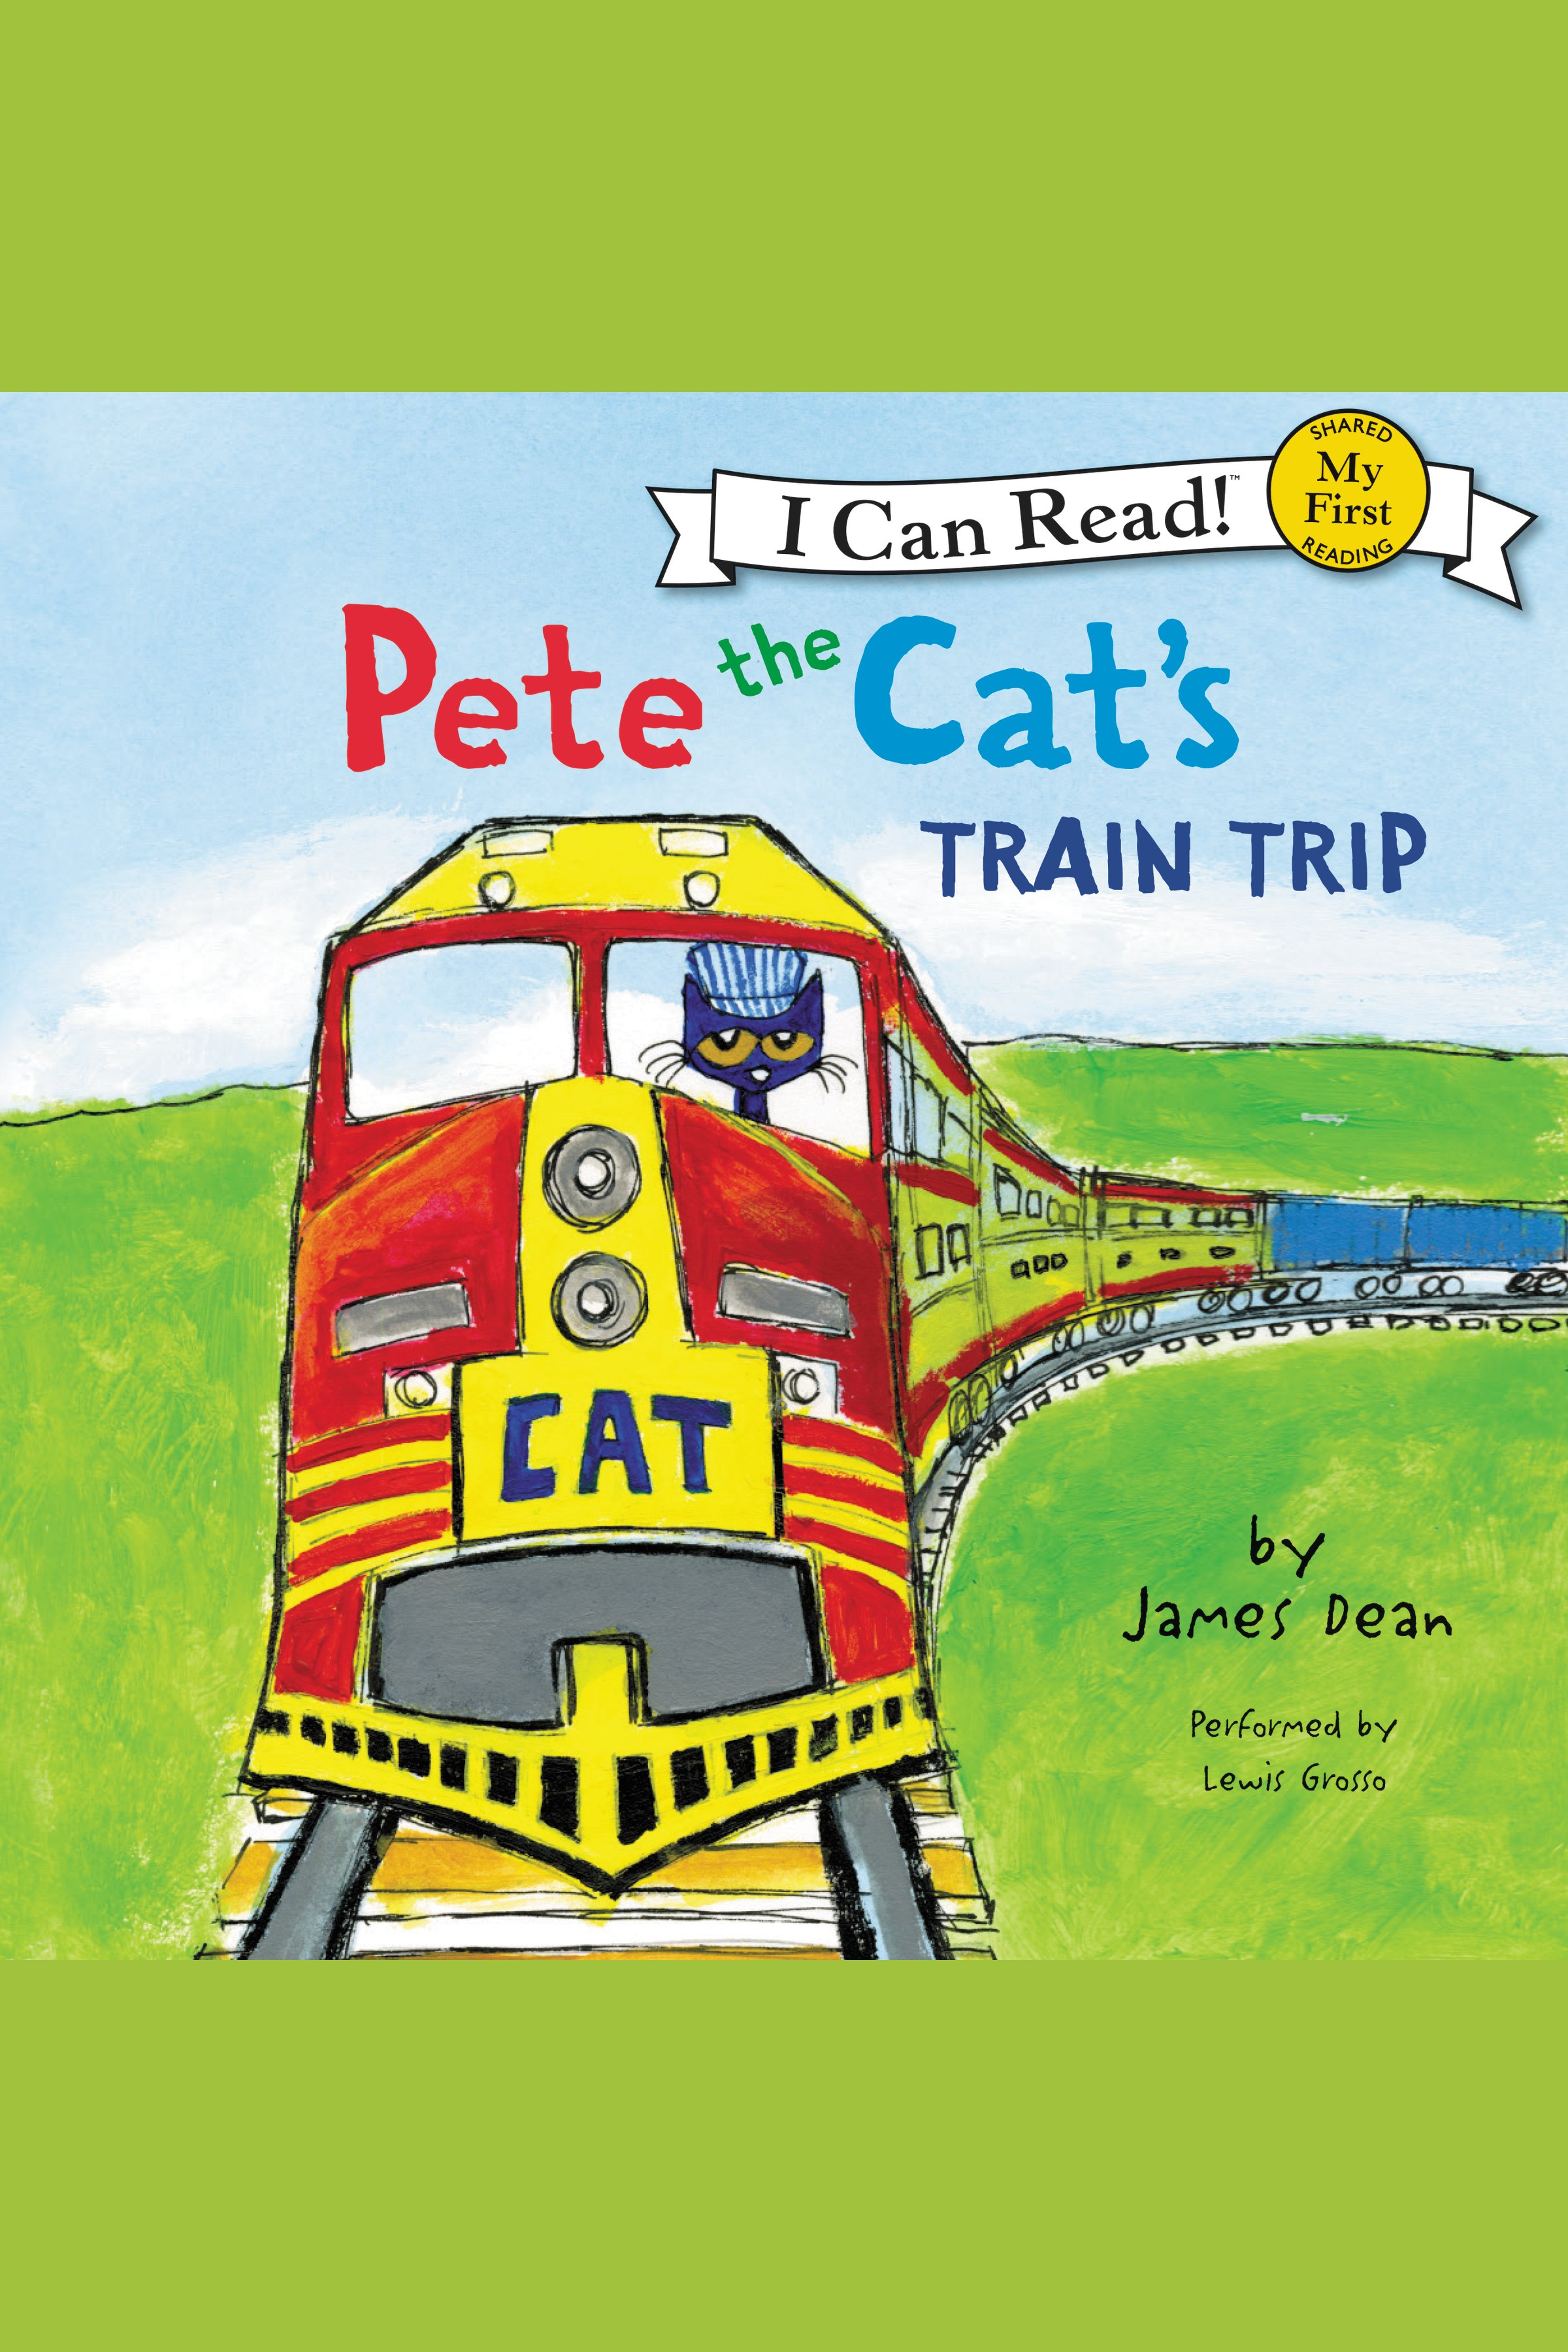 Pete the Cat's train trip cover image